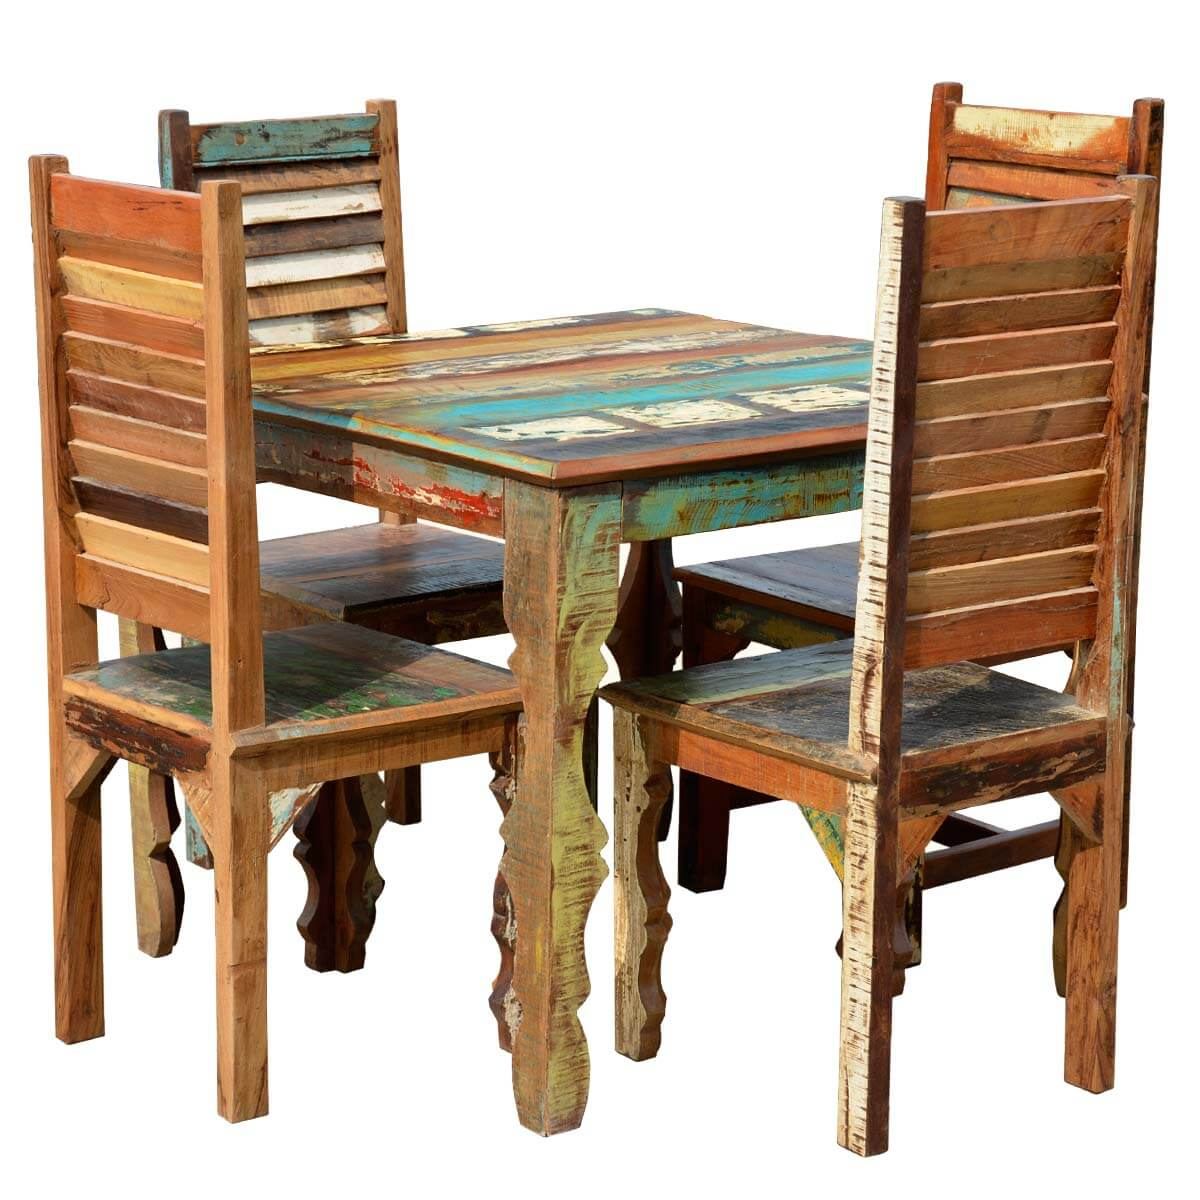 Rustic reclaimed wood dining table w shutter back chairs for 4 person dining table